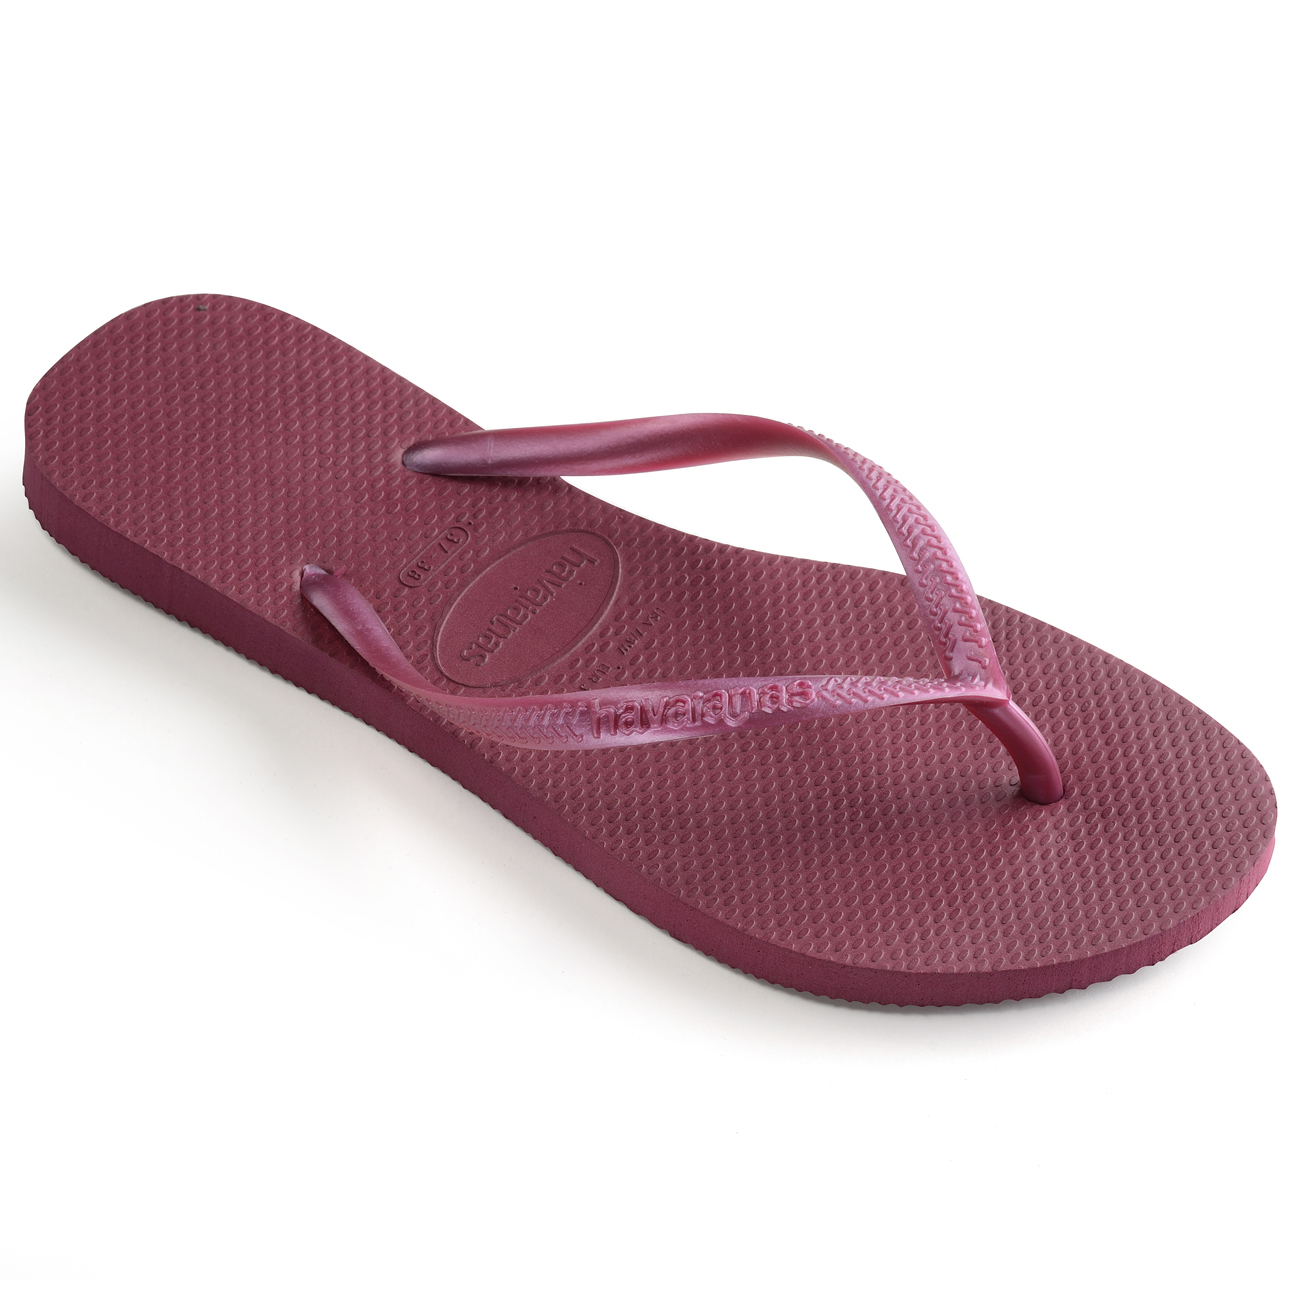 da1c7221df2eaa Image is loading Womens-Havaianas-Slim-Beetroot-Summer-Rubber-Beach-Brazil-